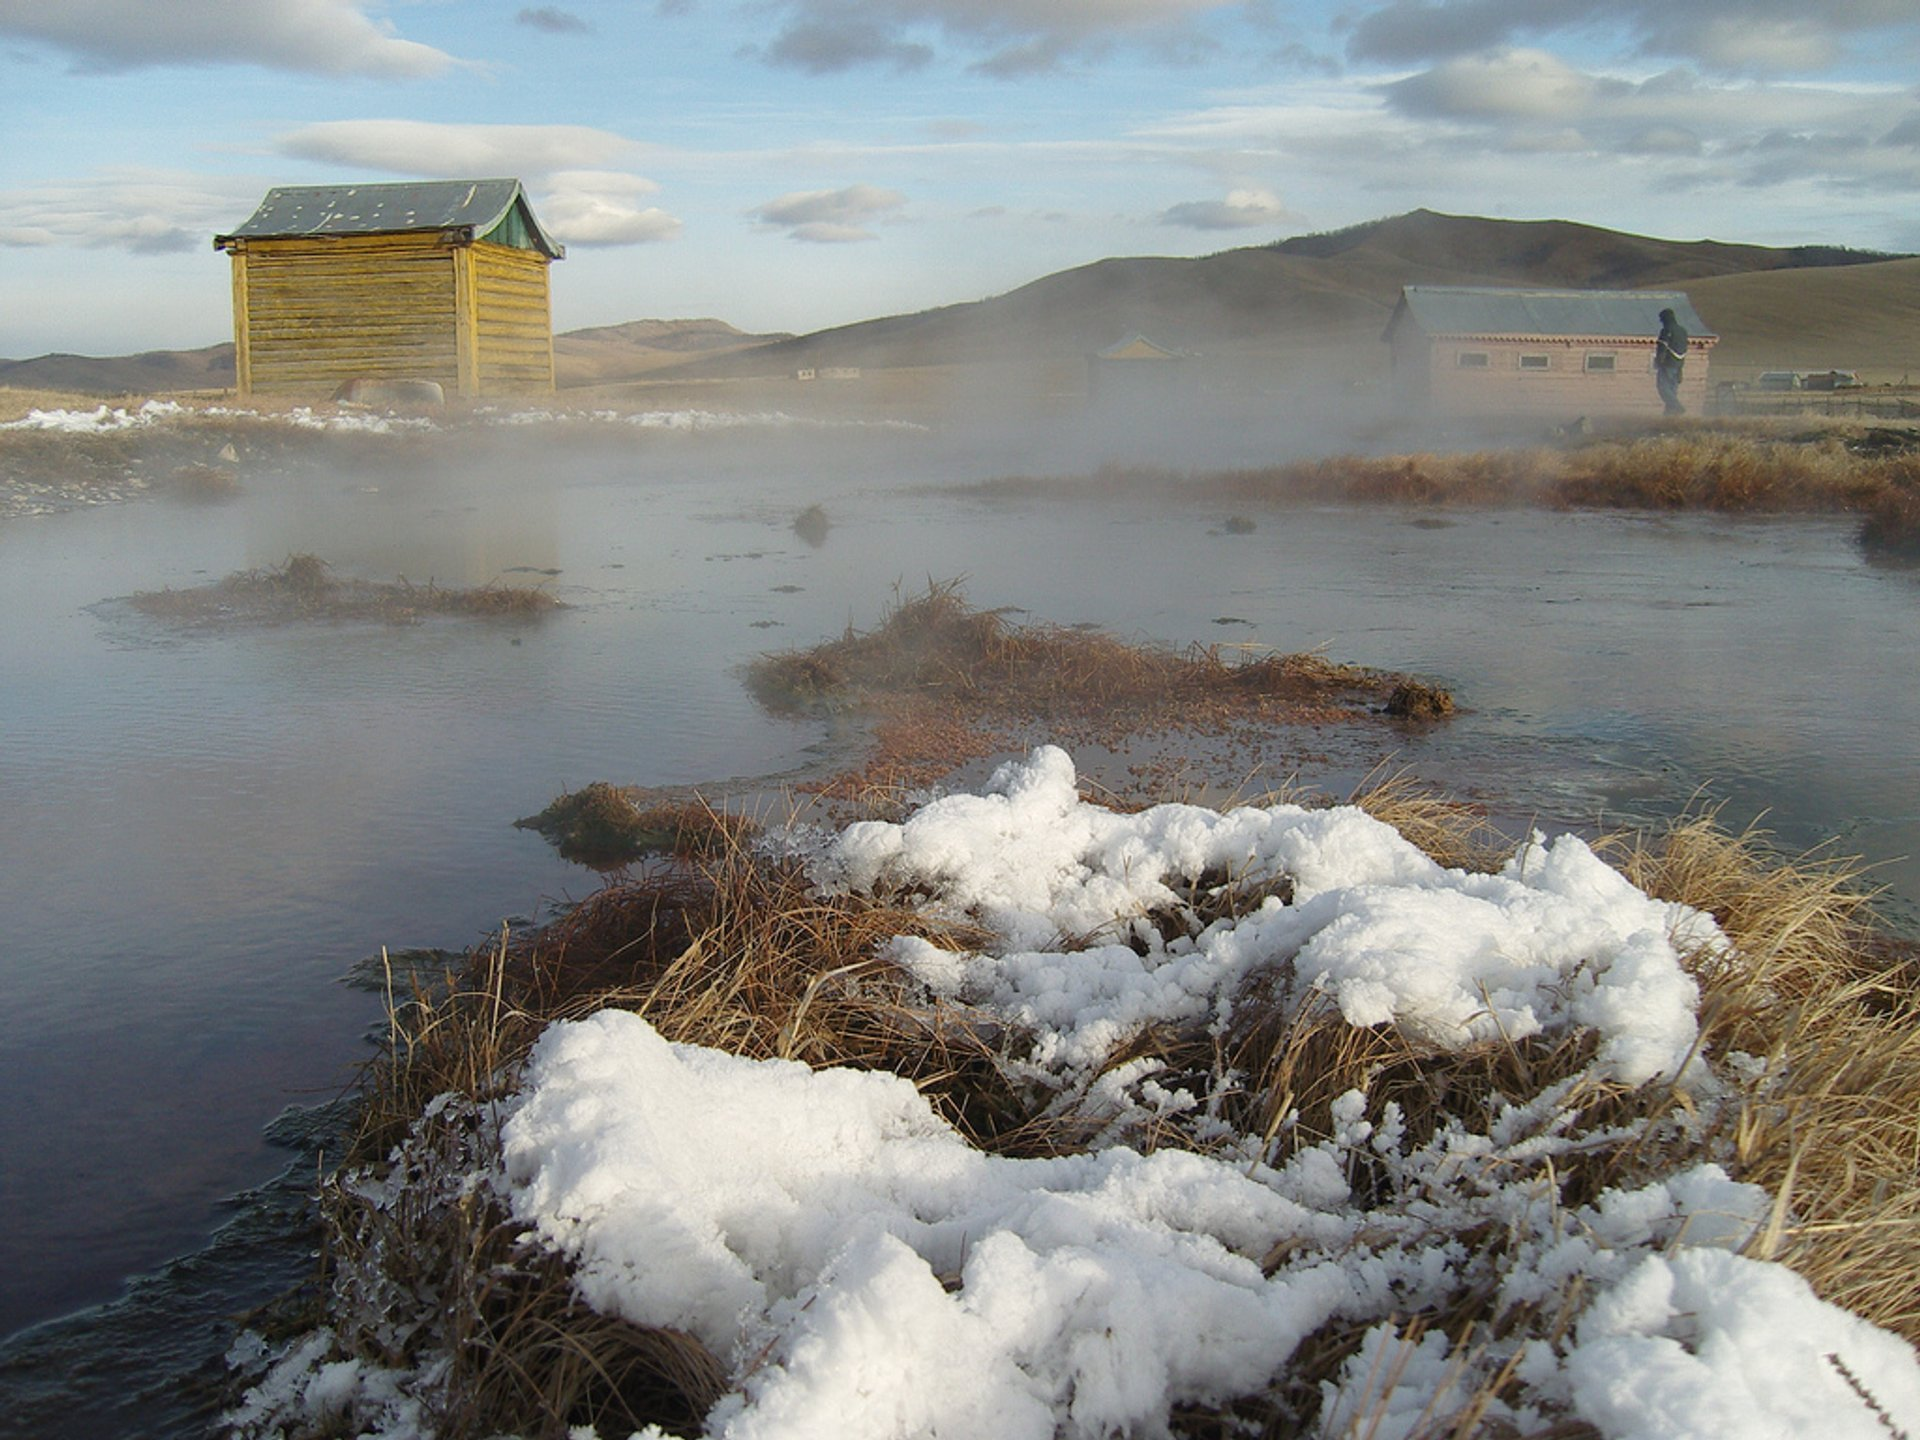 Hot Springs in Mongolia - Best Season 2020